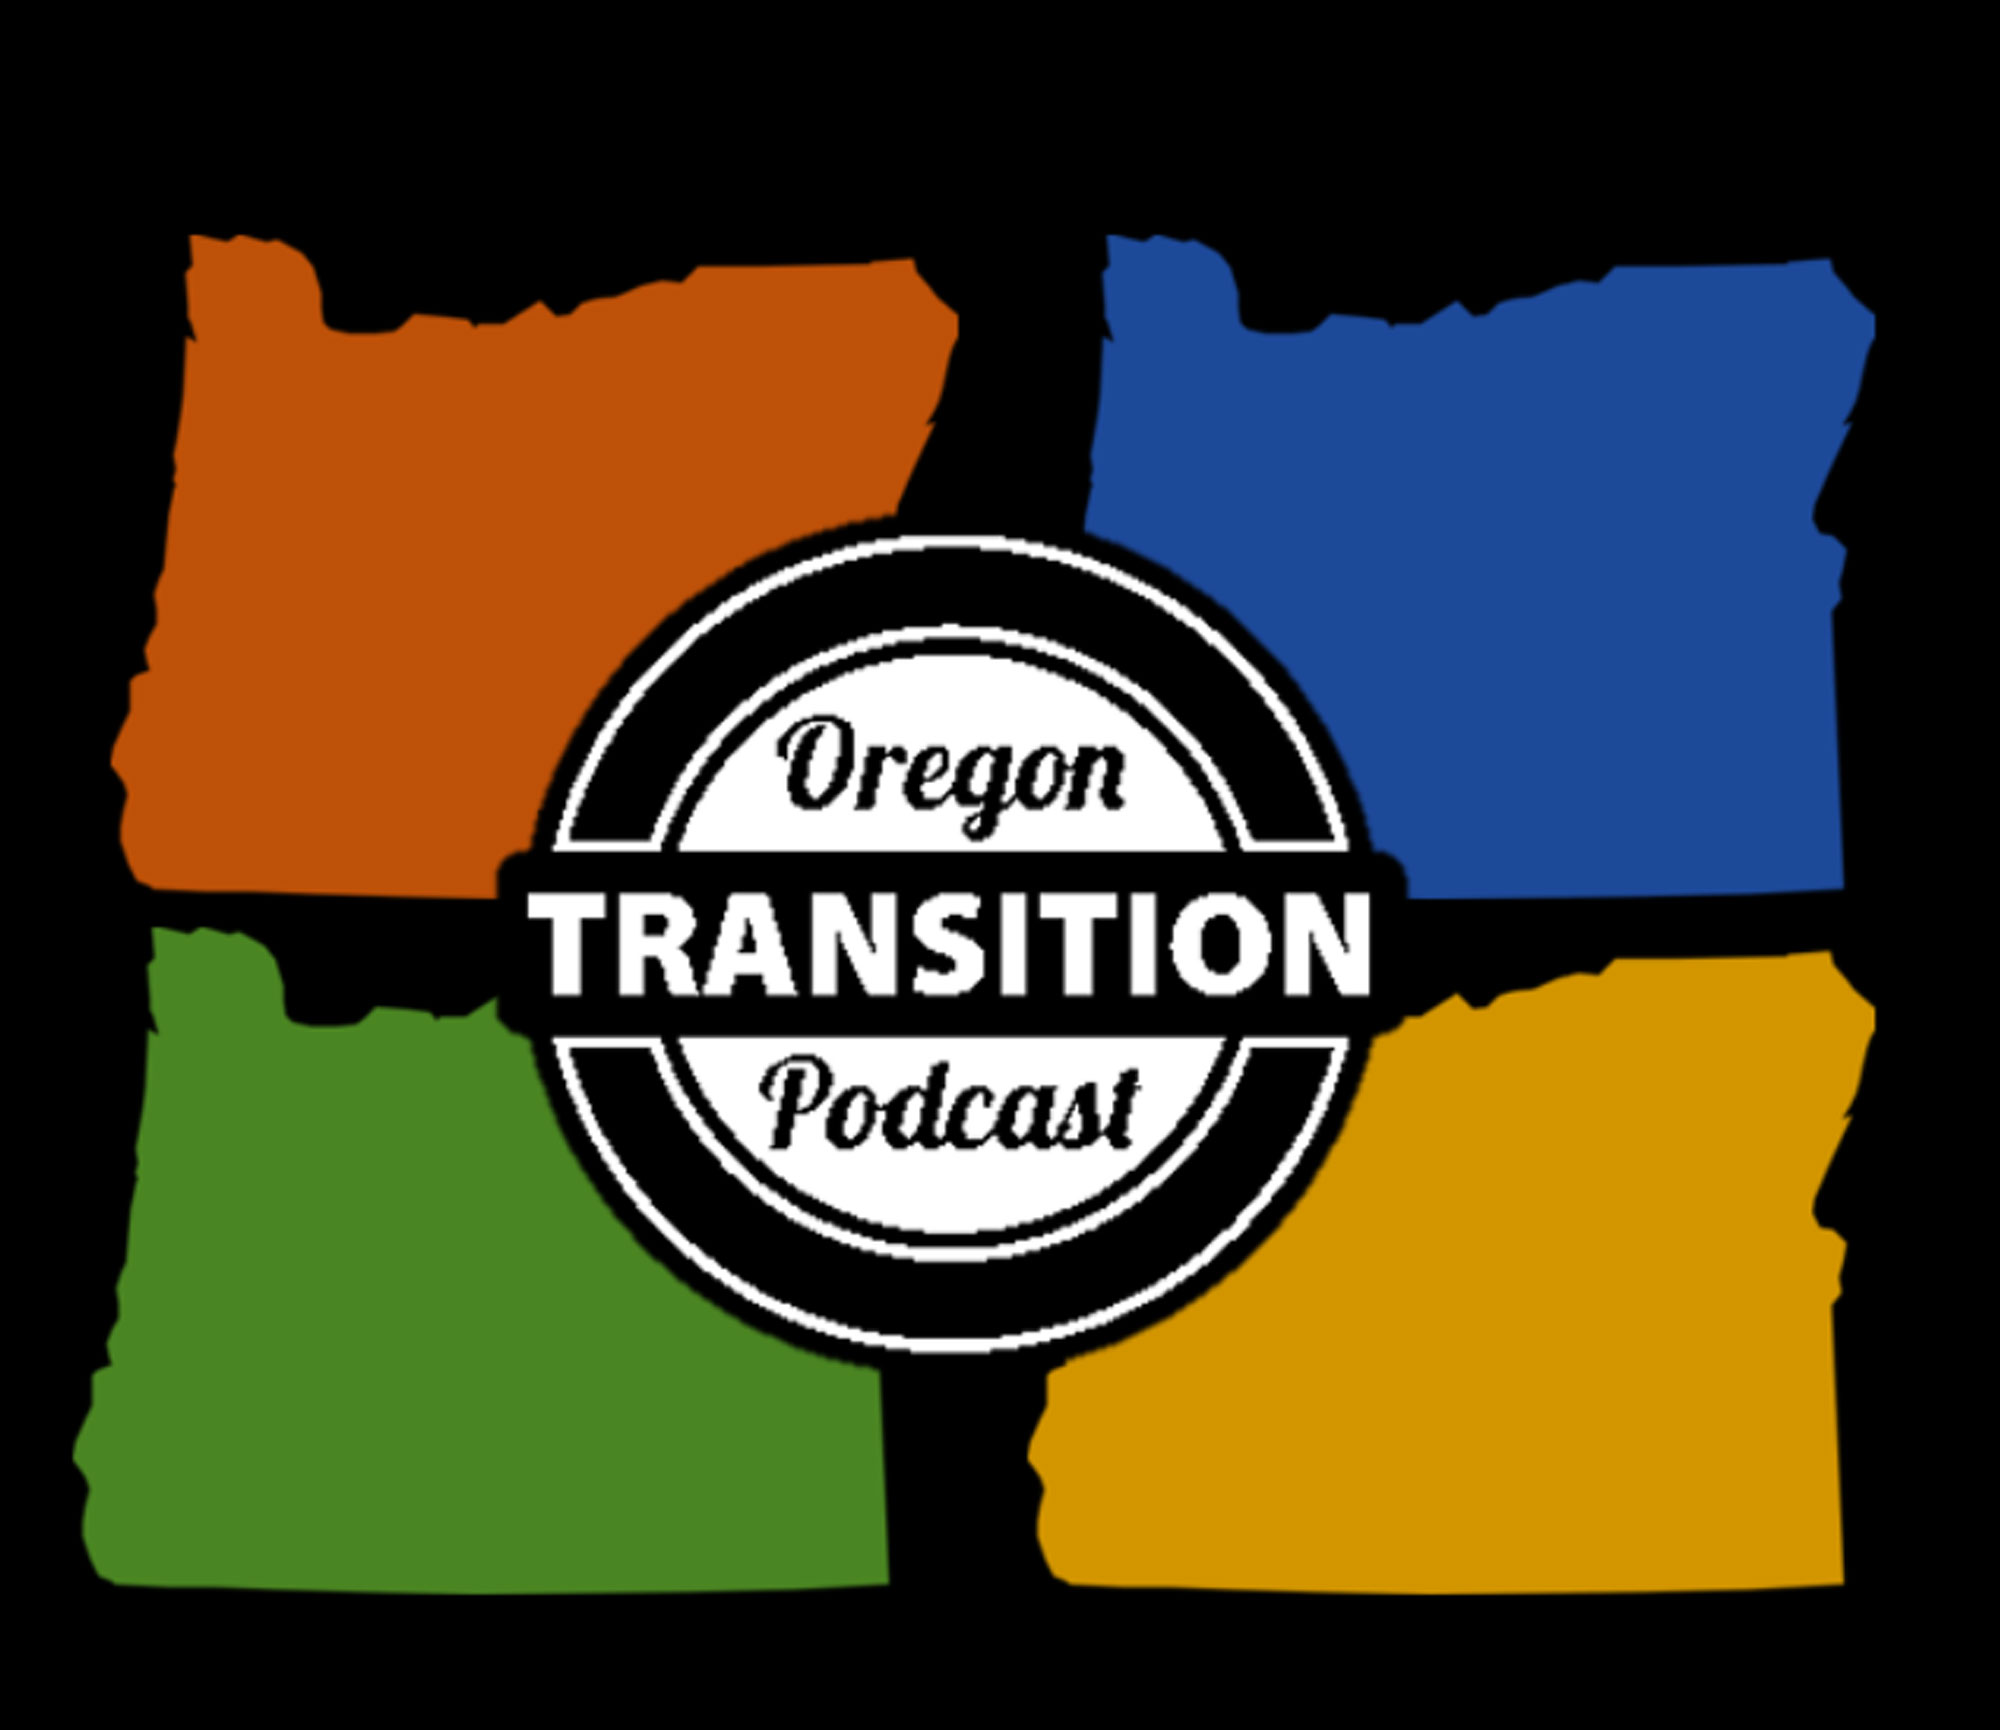 The Oregon Transition Podcast